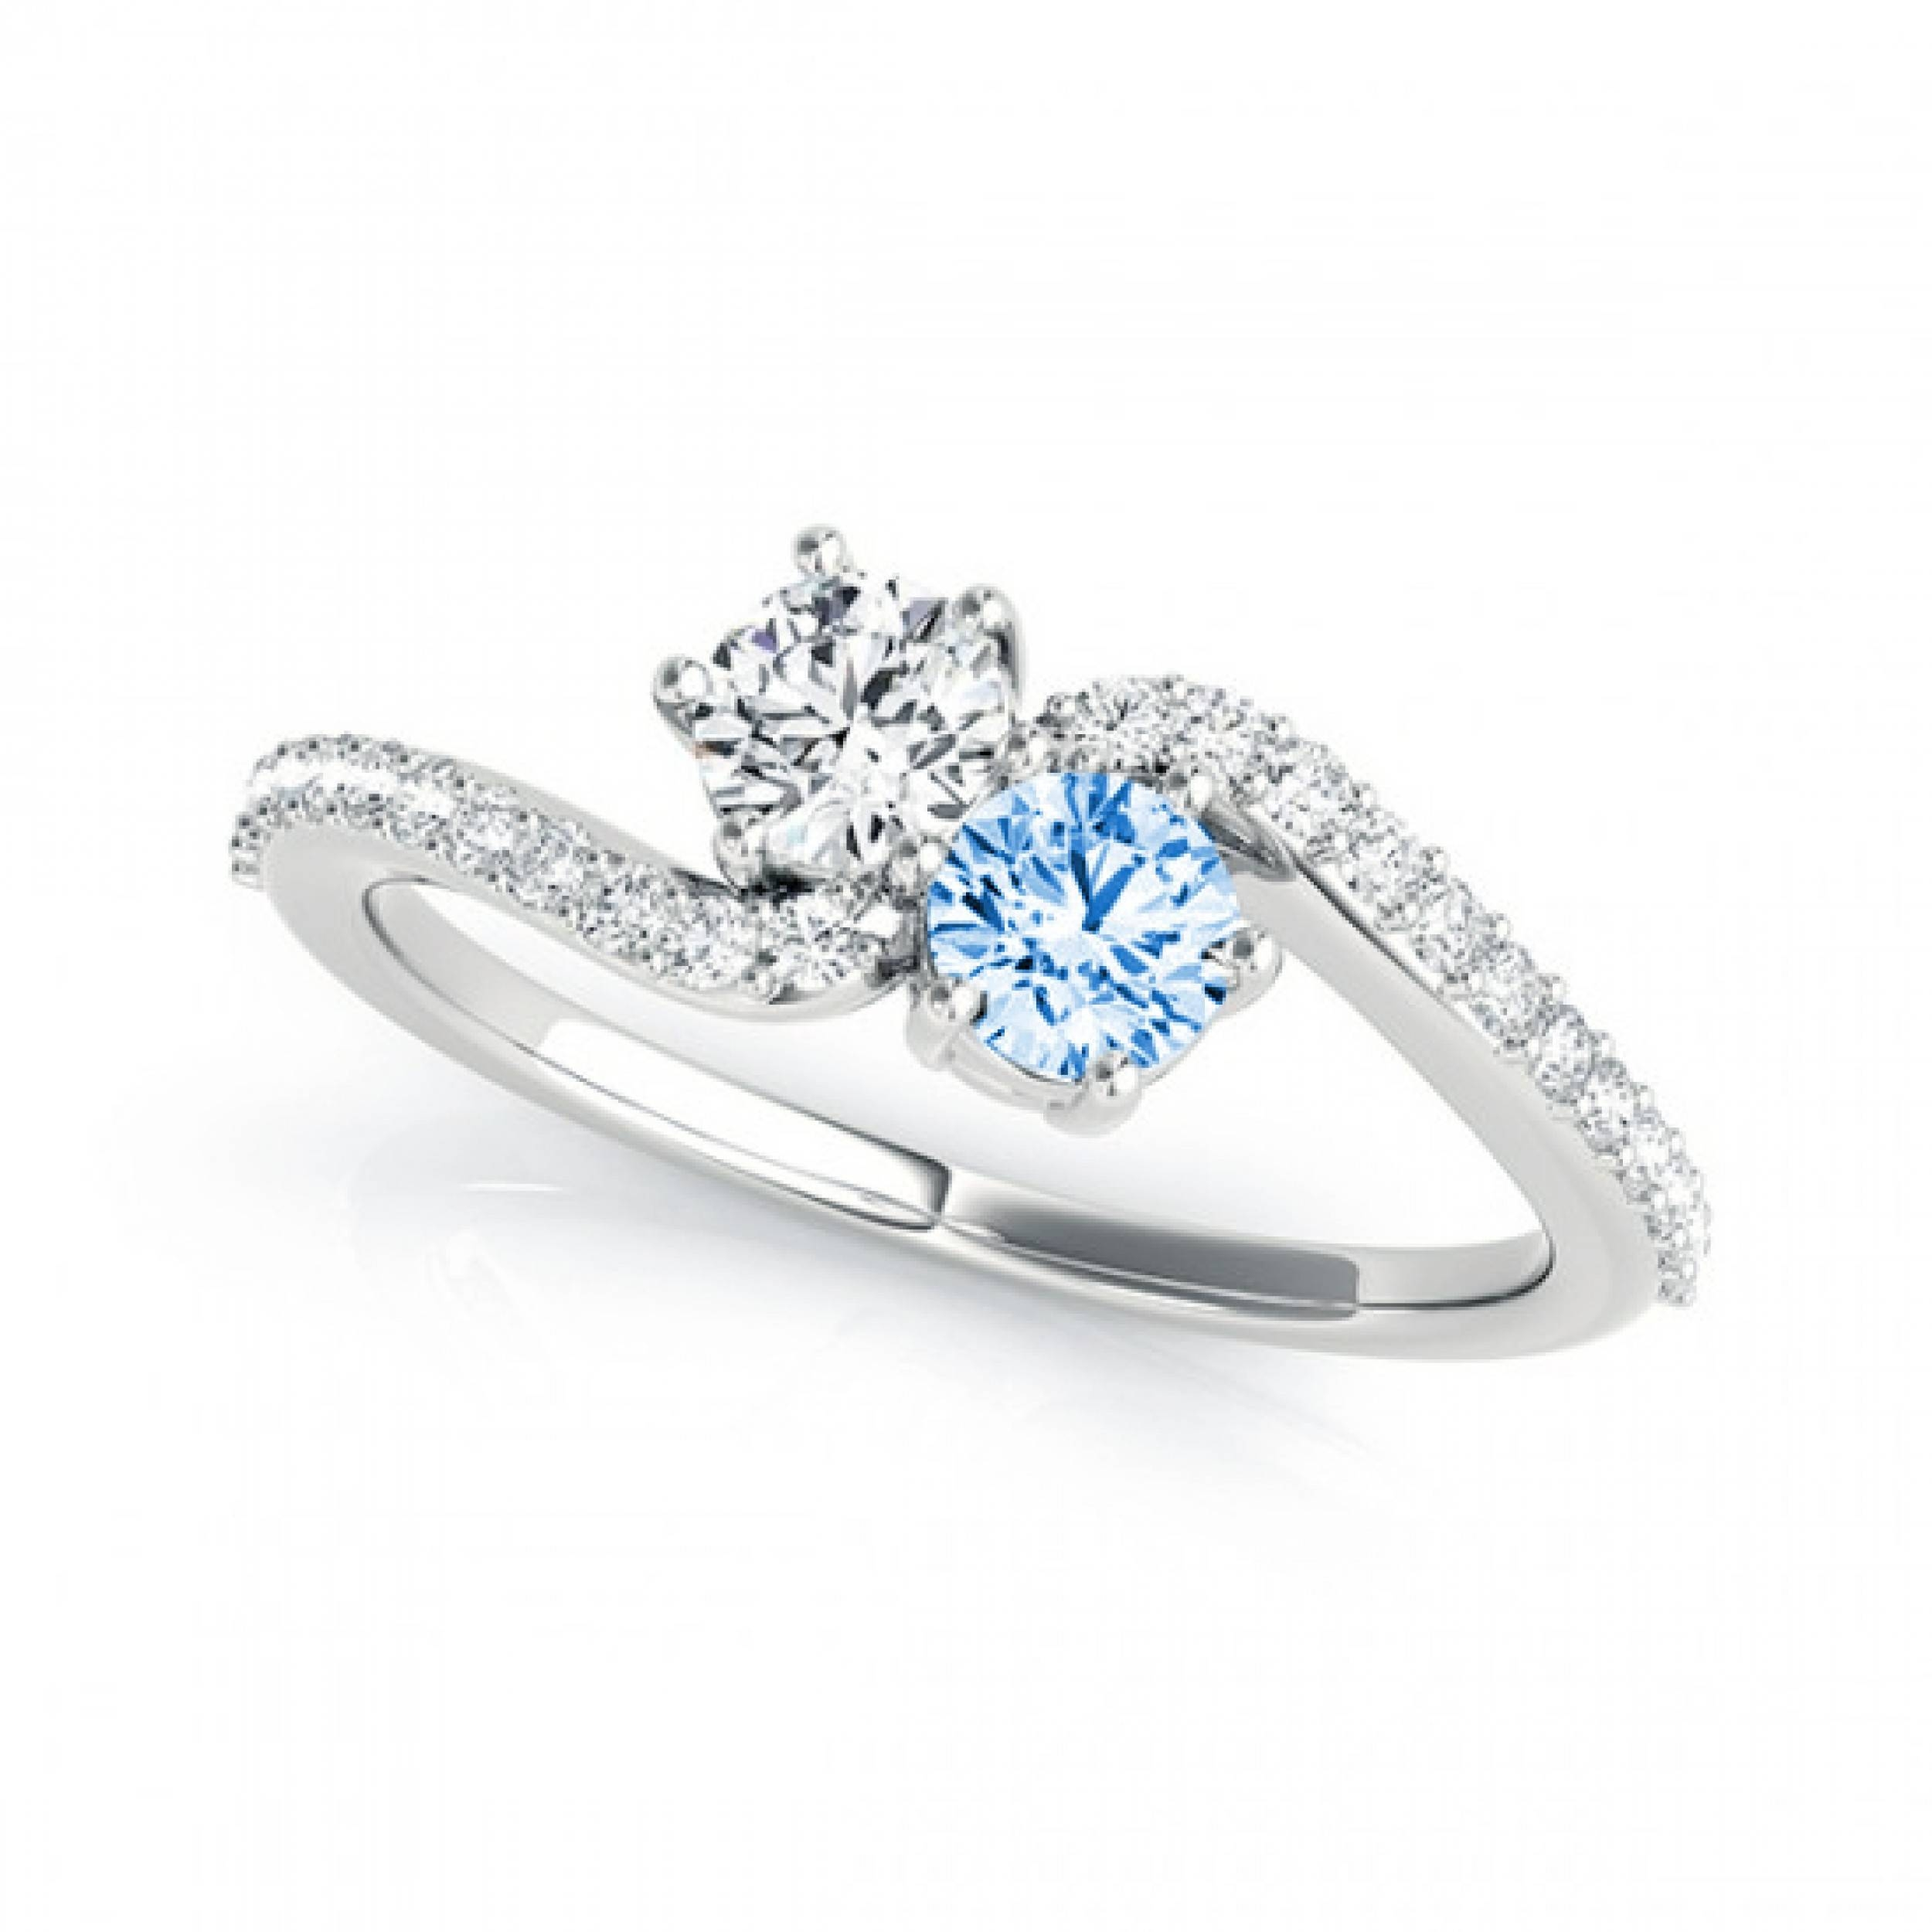 the sapphire rings december engagement it is a birthstone for blue find at september